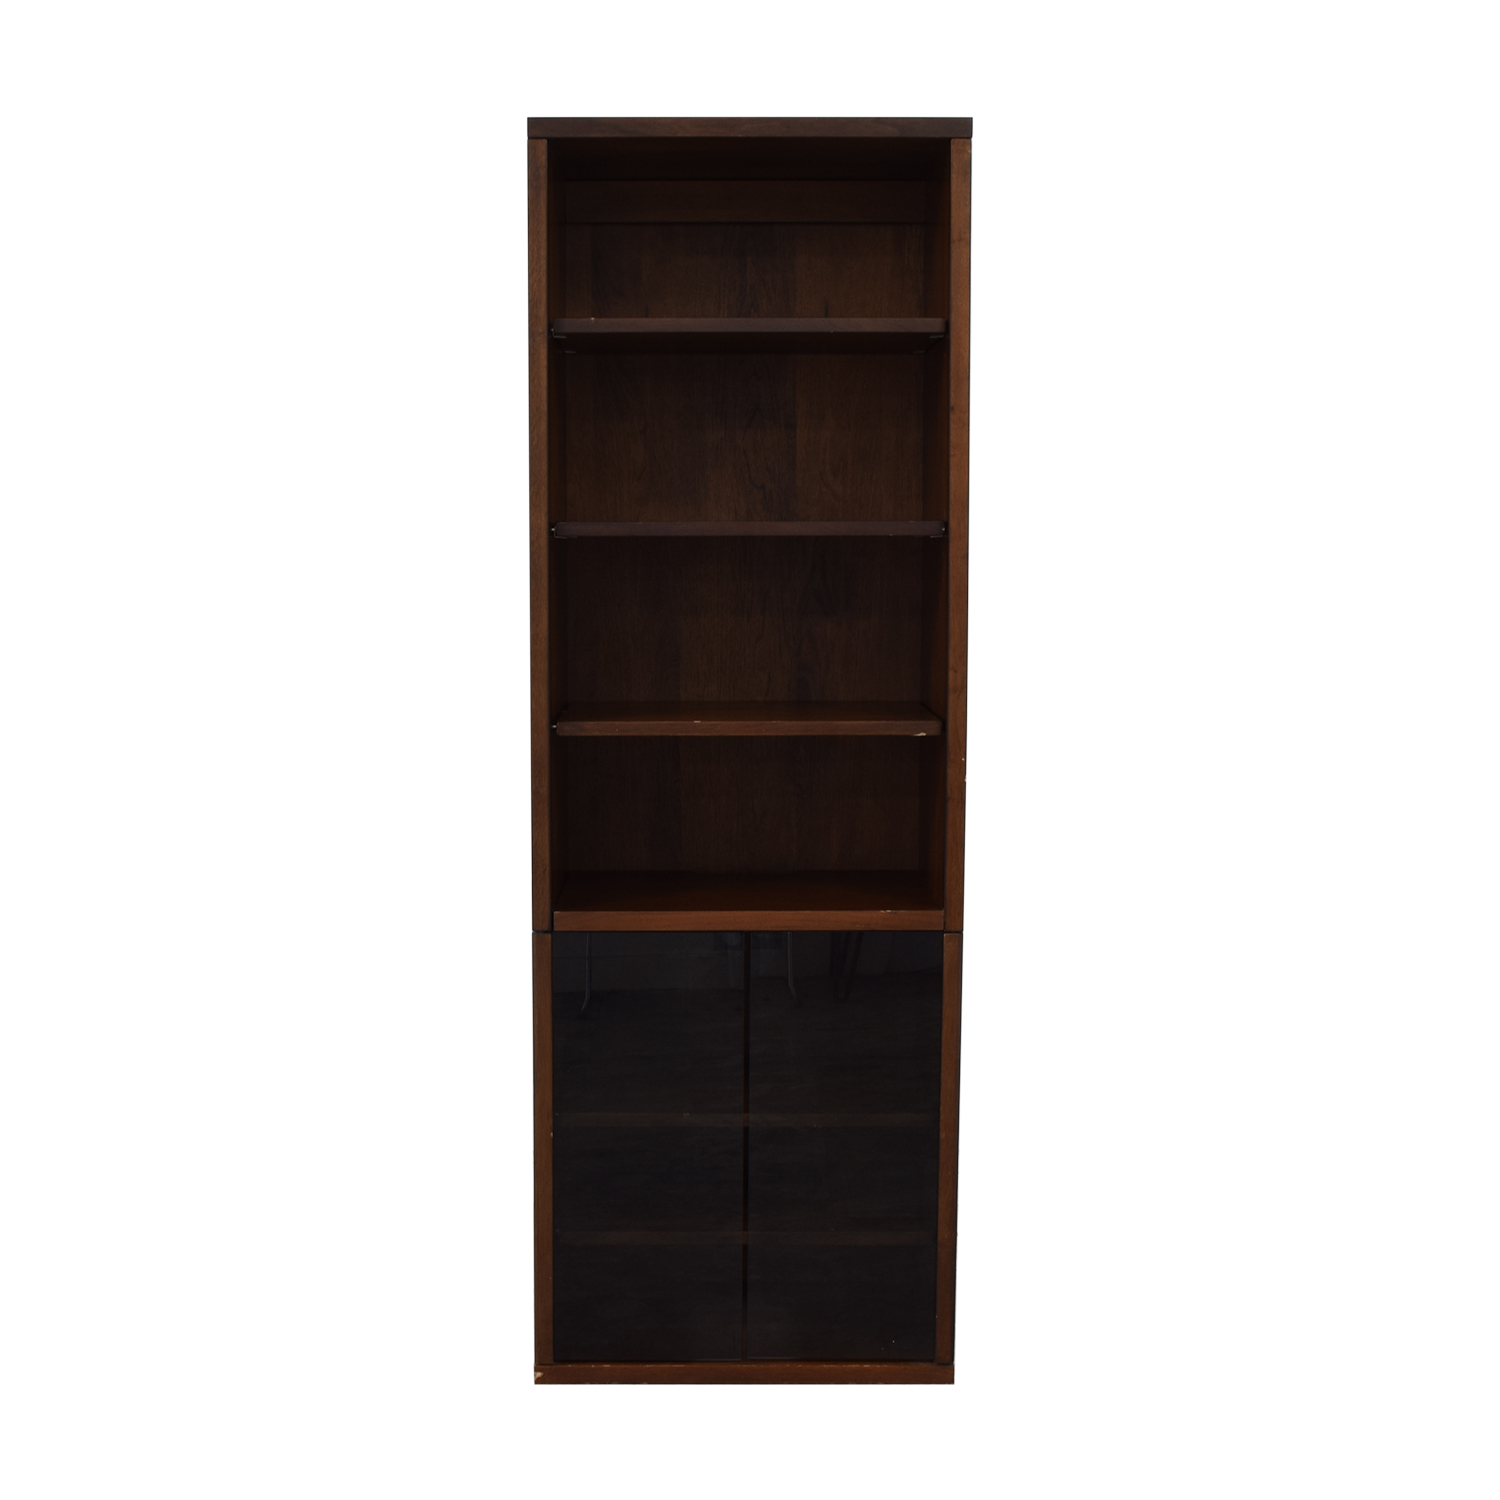 Bookcase with Glass Cabinet / Bookcases & Shelving